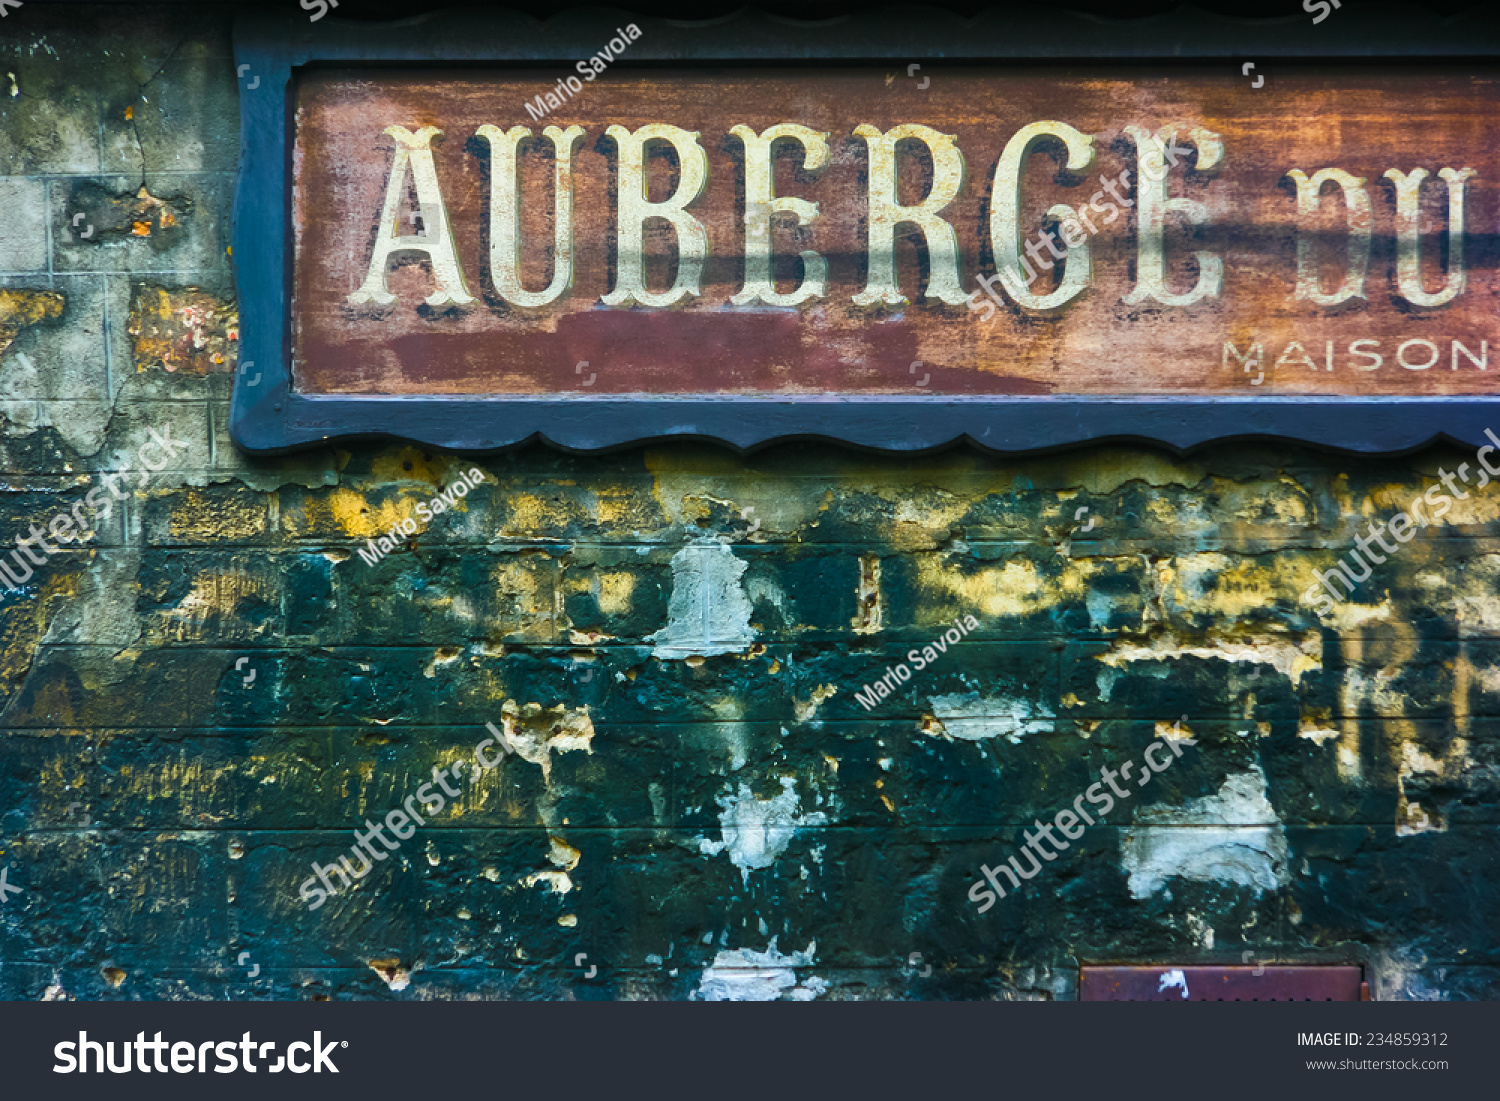 Old hotel signage in paris france auberge means hotel for What does maison mean in english